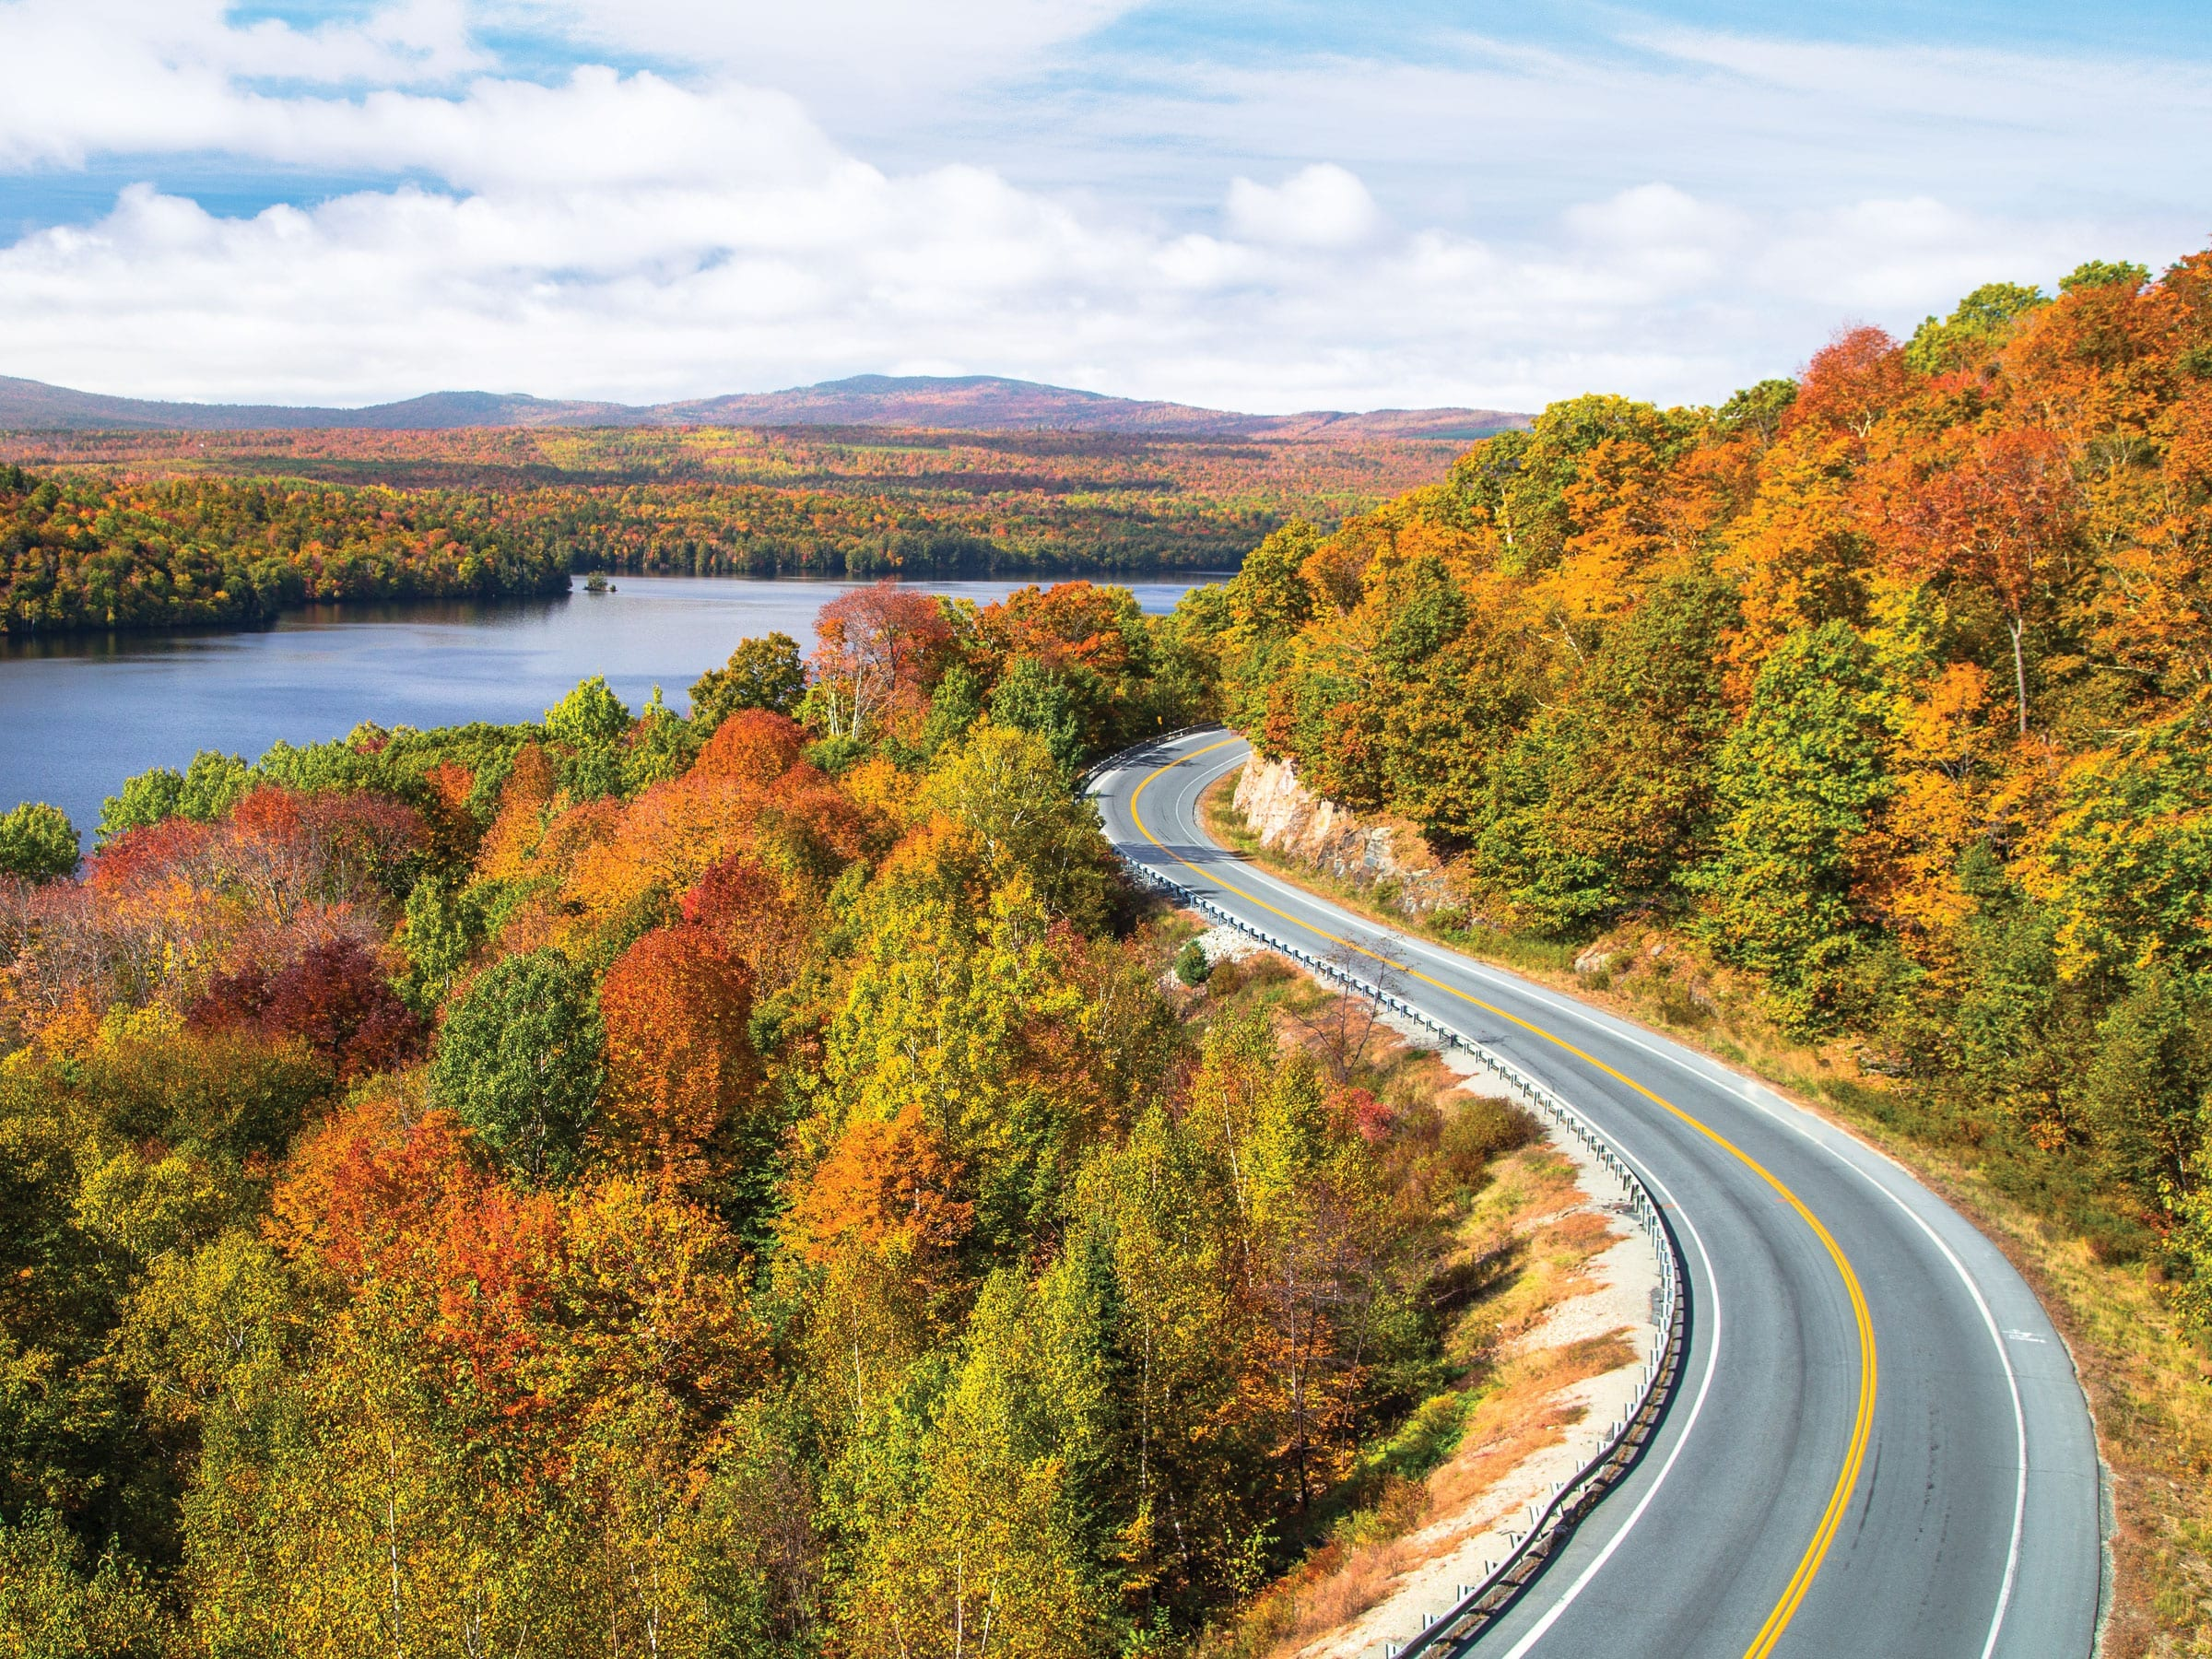 Moscow S Curve of Old Canada Road National Scenic Byway